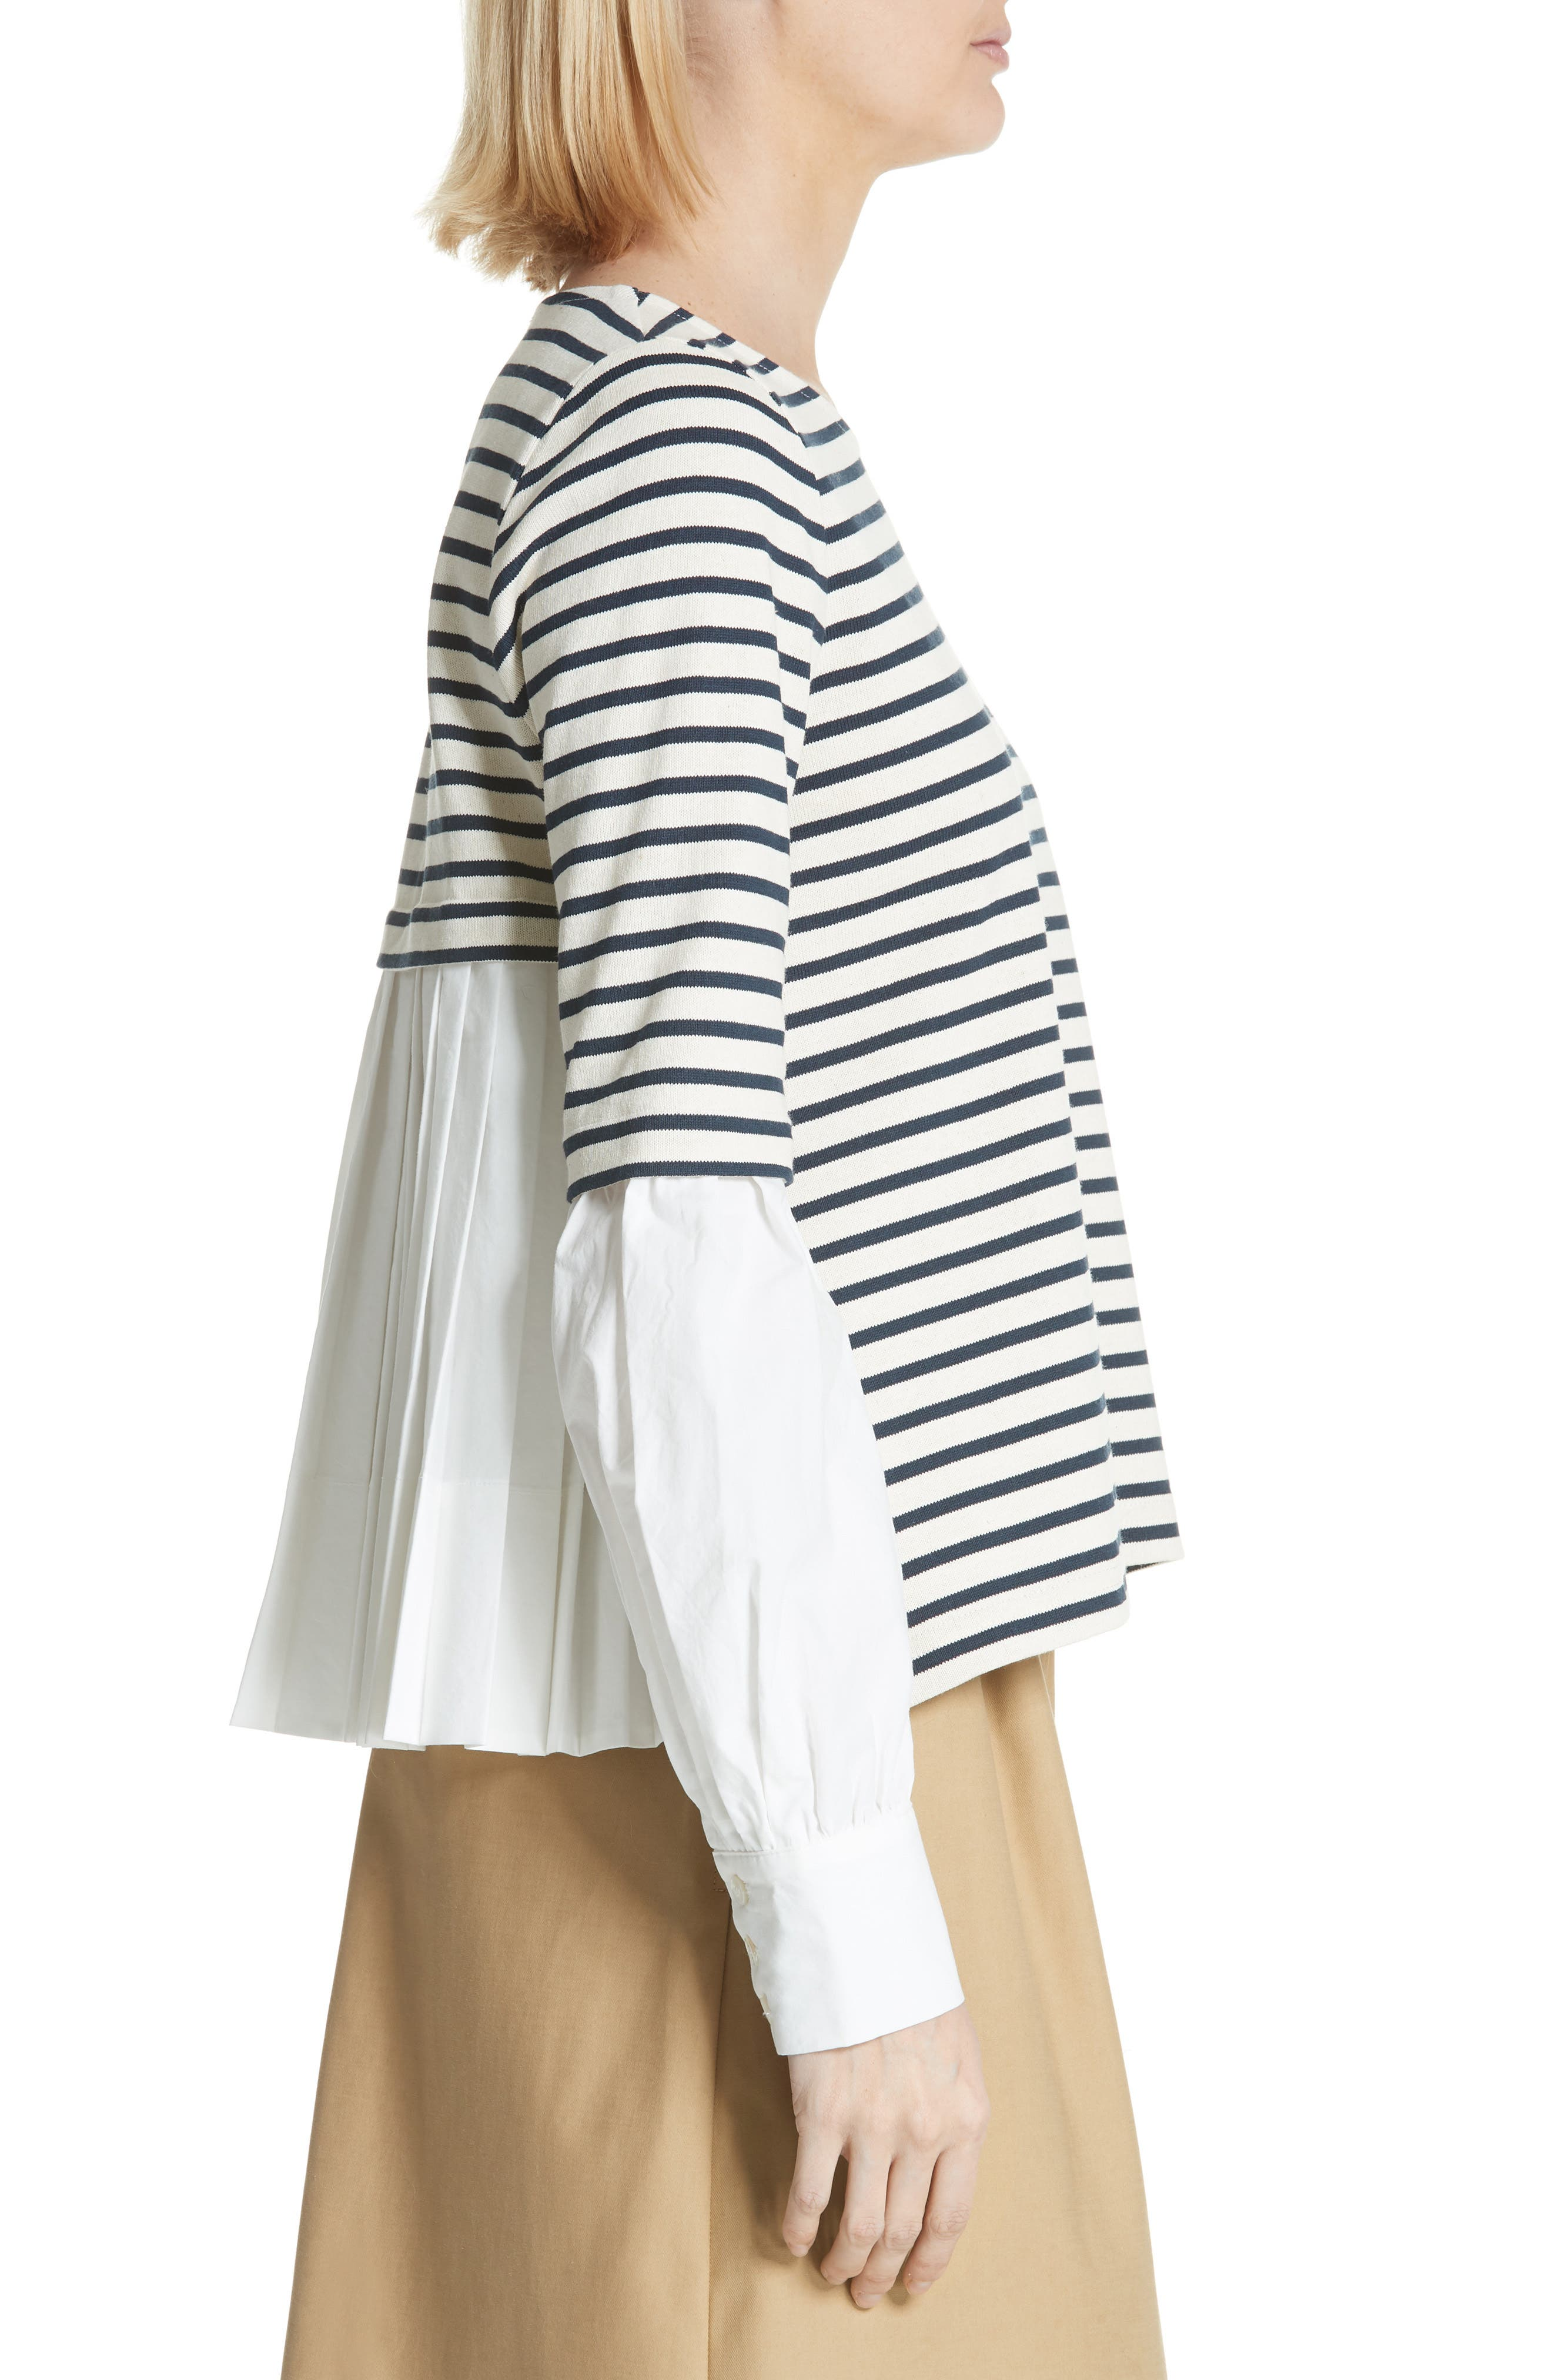 Levine Mixed Media Top,                             Alternate thumbnail 3, color,                             CREAM/ NAVY STRIPE